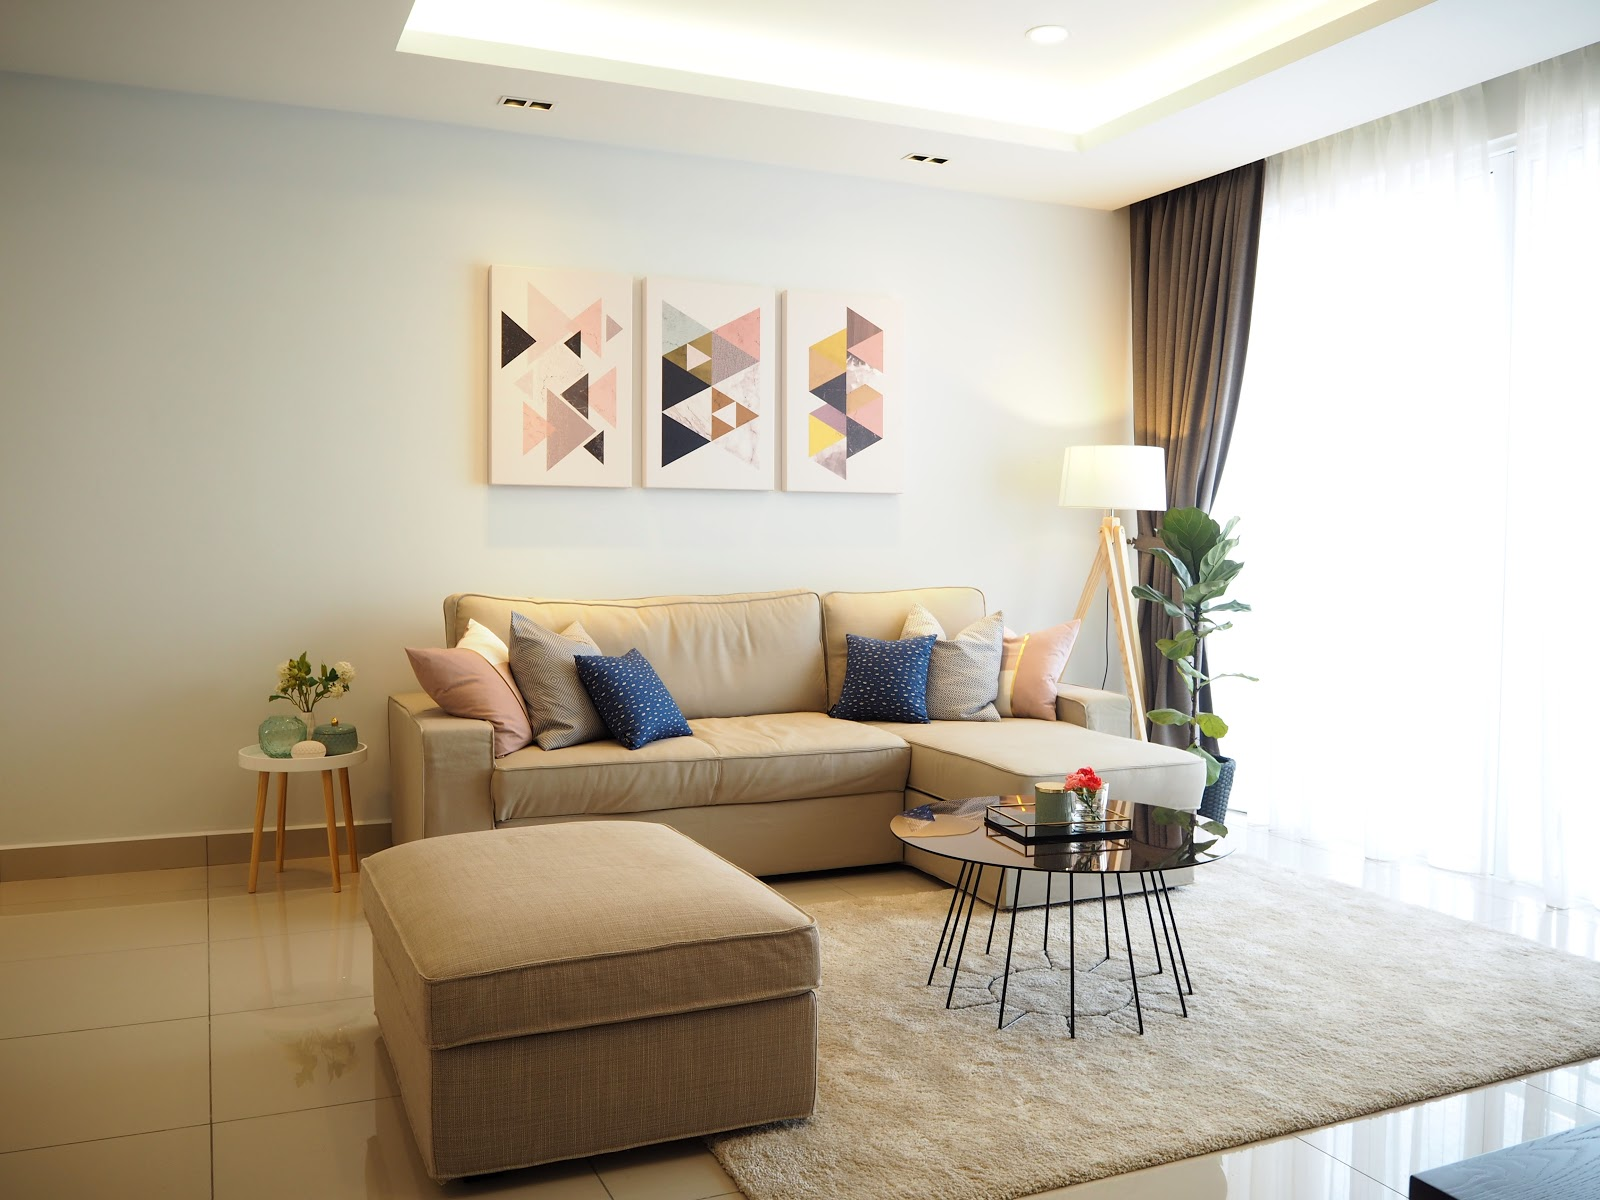 Condo in Cheras. Project by Meridian Inspiration